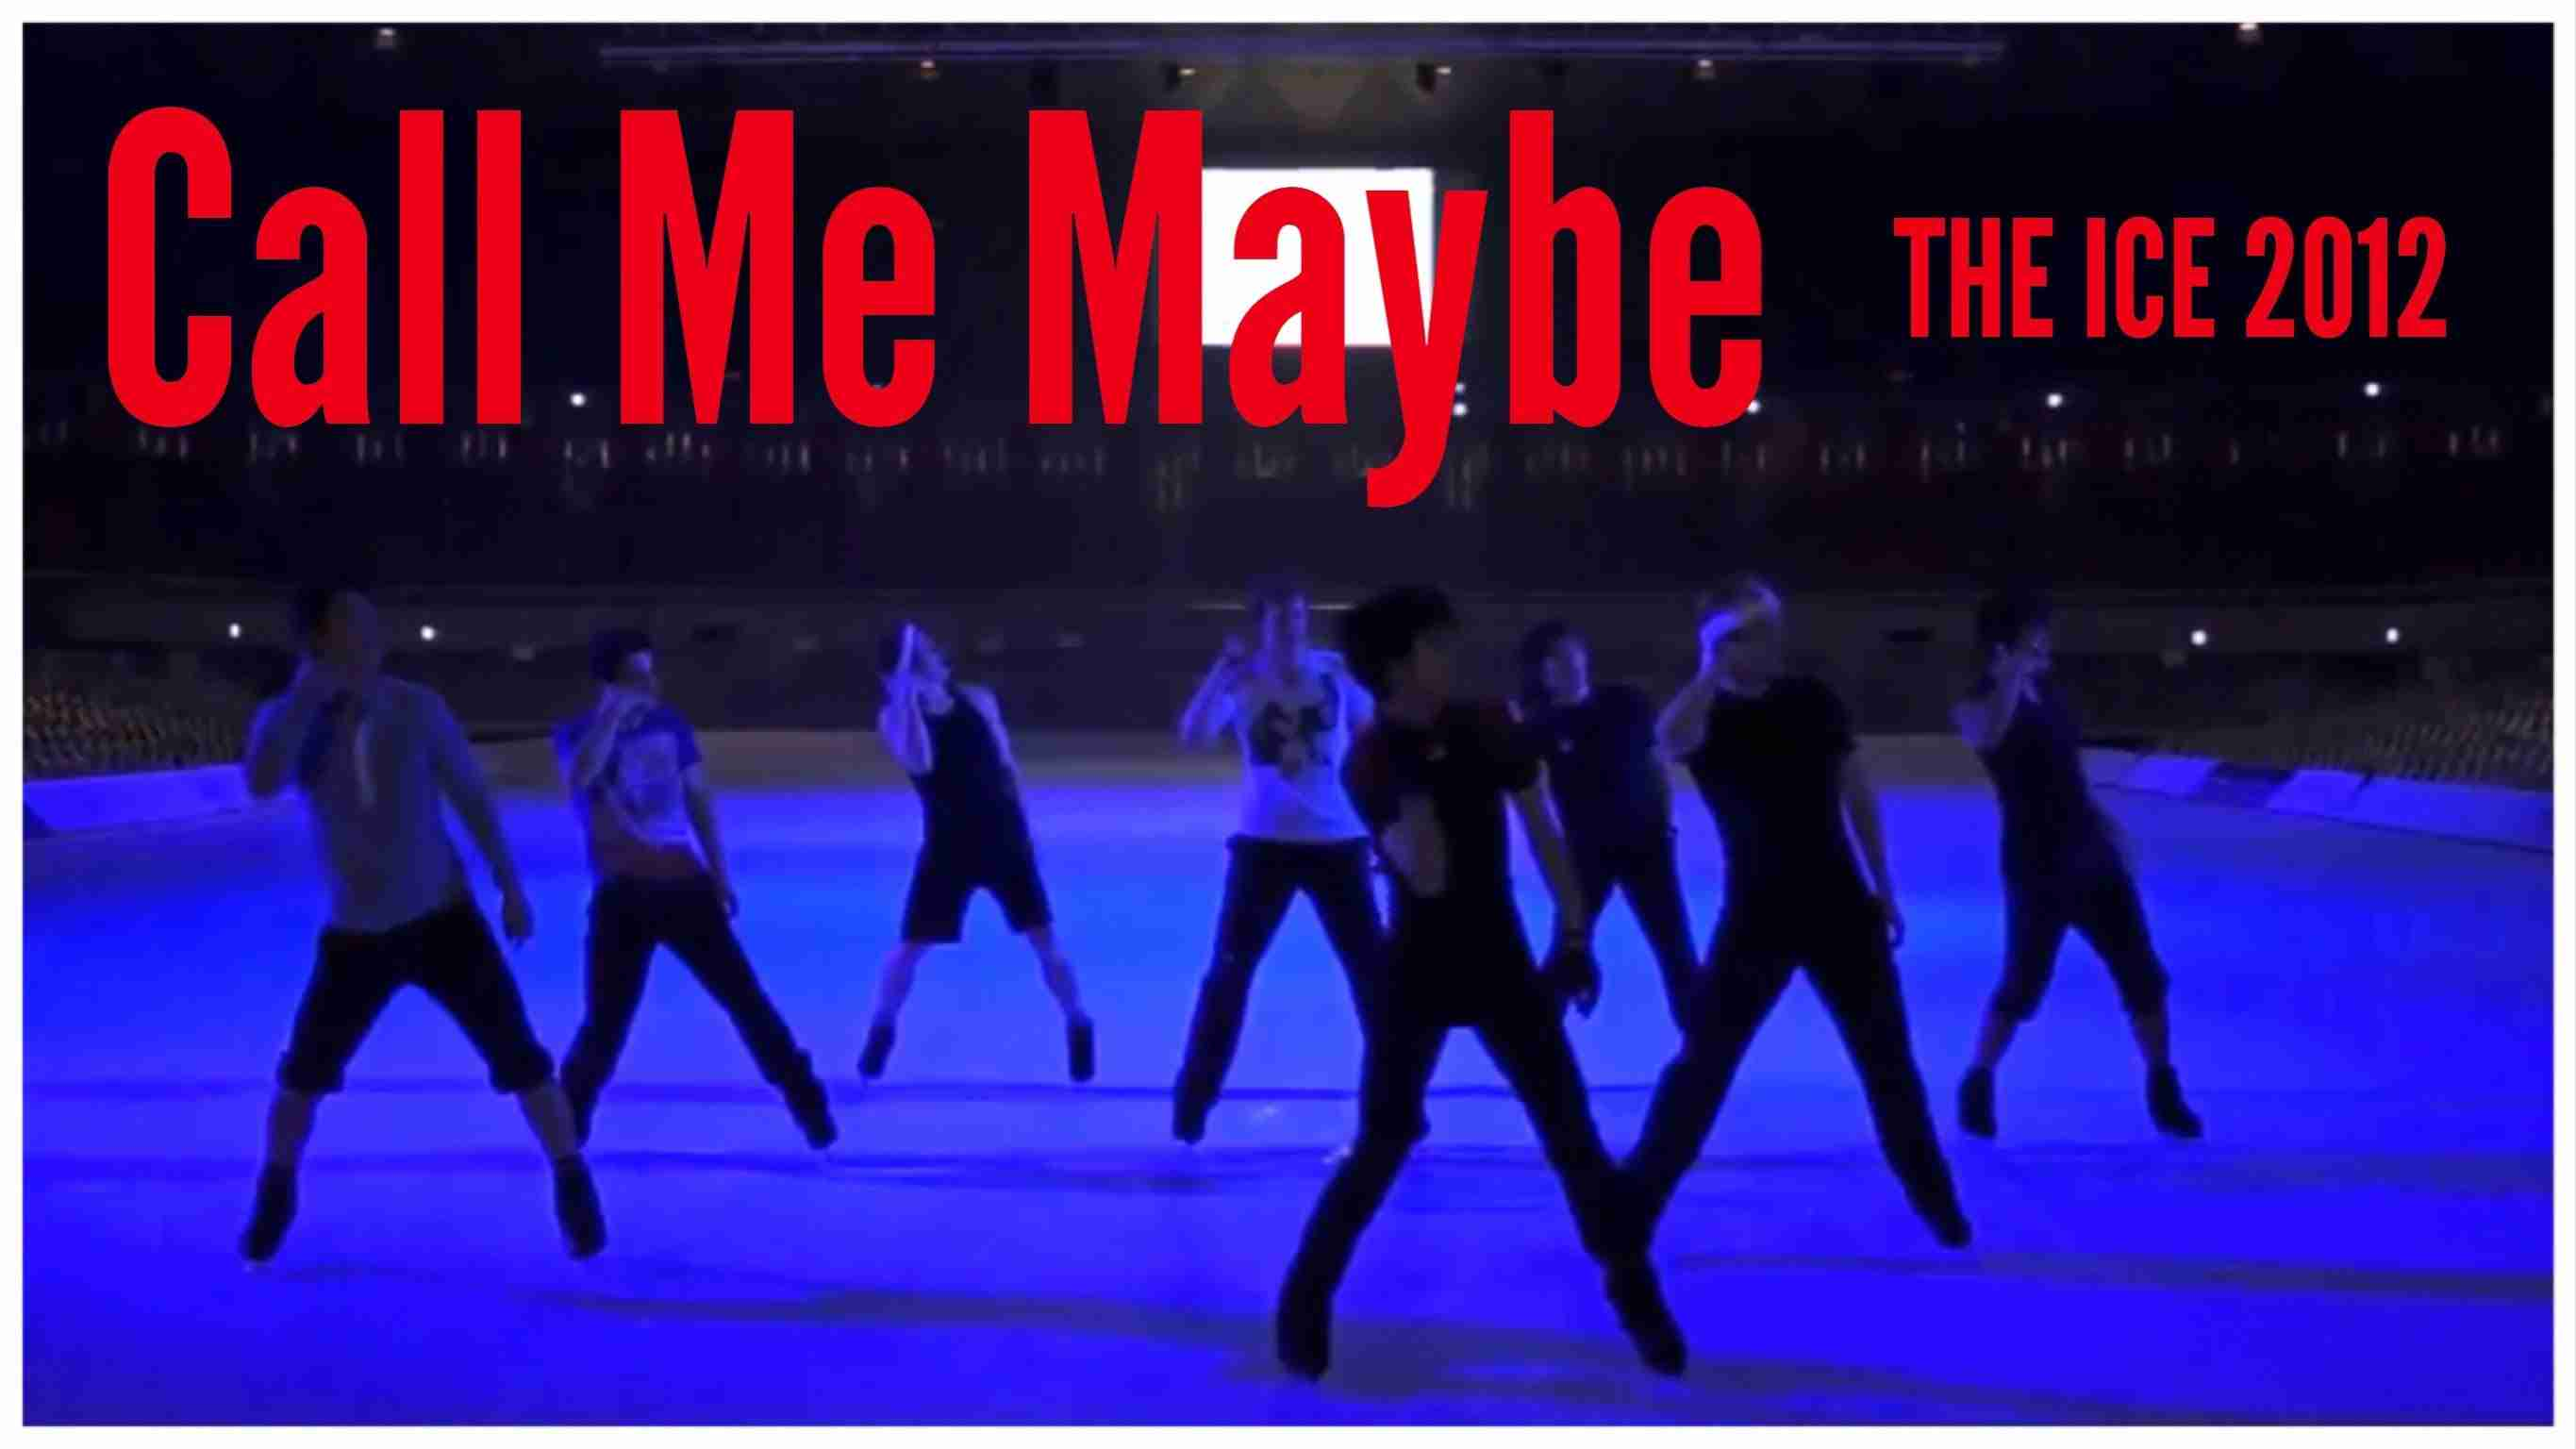 Call Me Maybe - THE ICE 2012 - YouTube